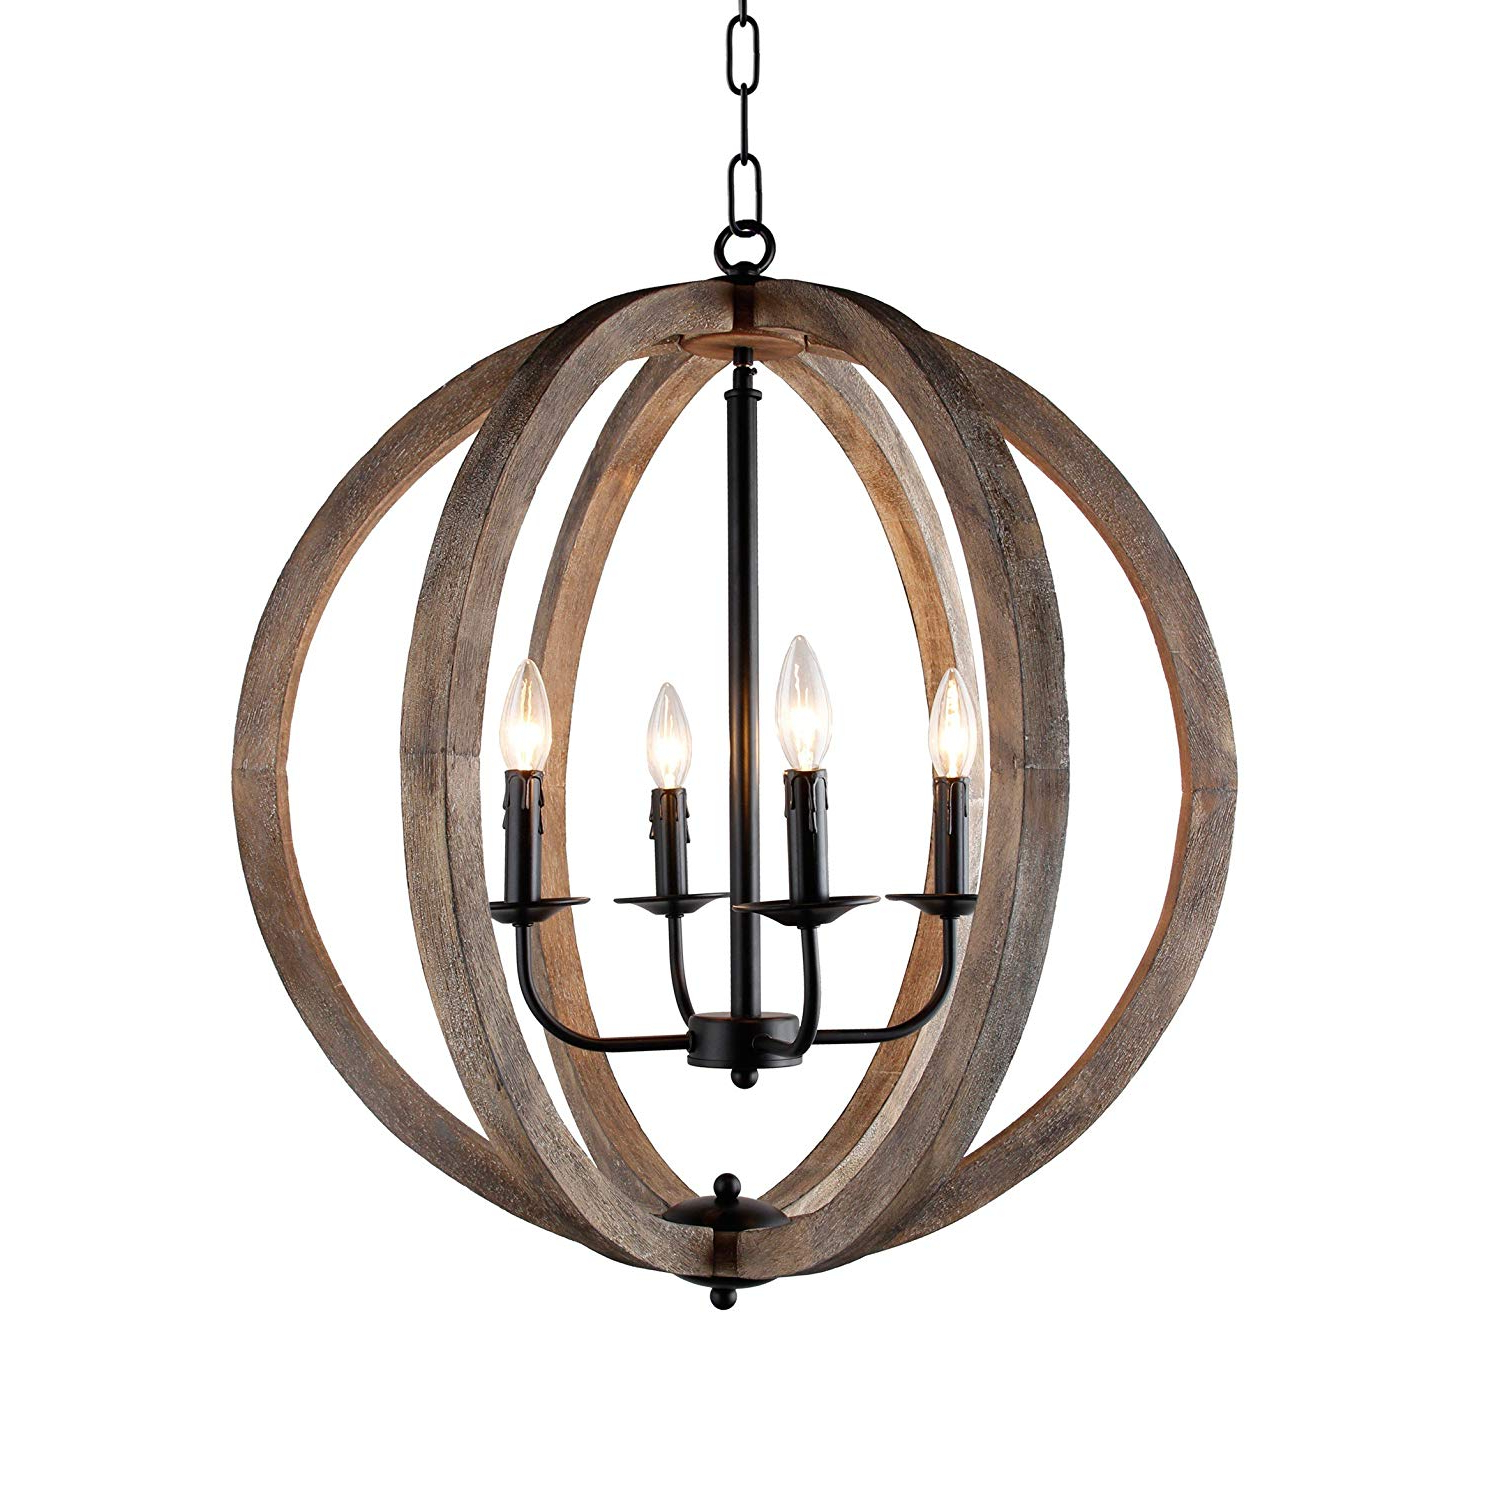 "Blanchette 5-Light Candle Style Chandeliers pertaining to Most Recently Released Stanton 4-Light Candle-Style Rustic Chandelier Wood Frame Orb Foyer  Chandelier 24.4"" H X 27.5"" W"